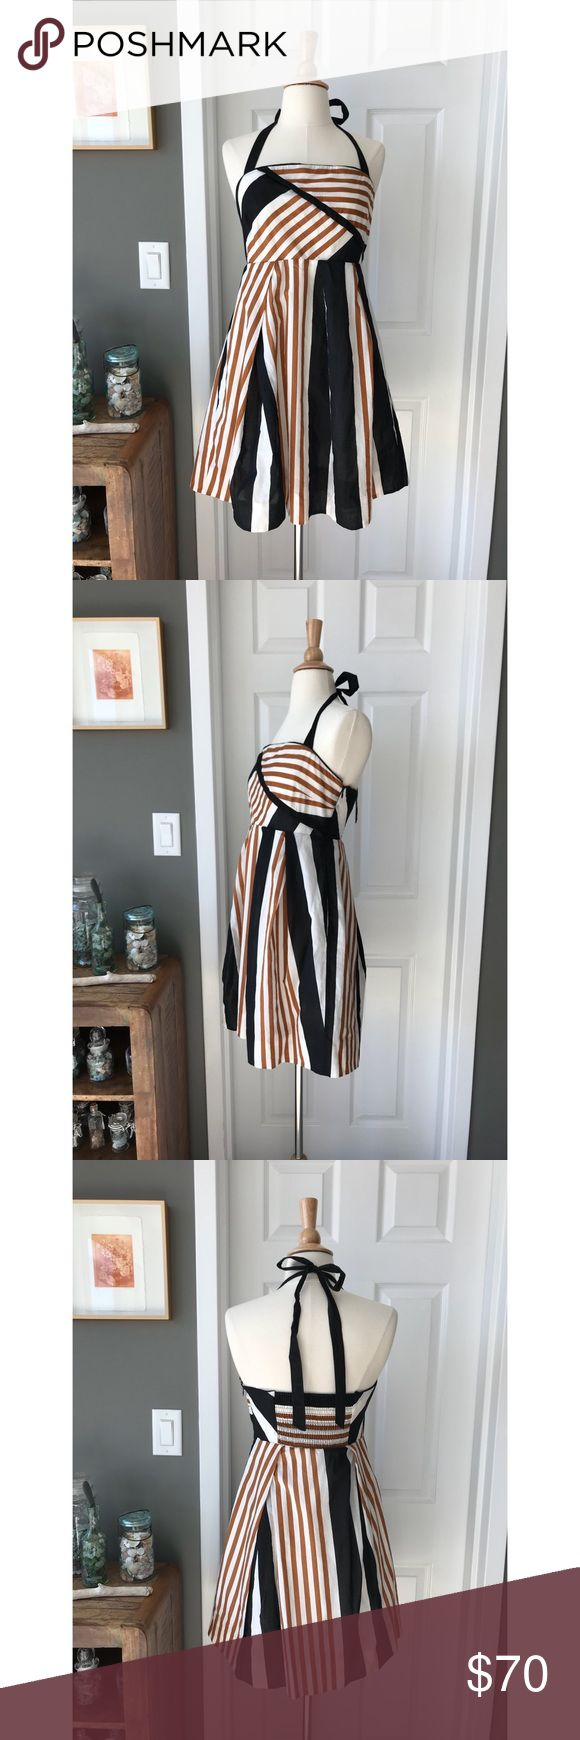 Anthropologie stripe halter dress Made for summer neutral stripe halter dress from anthro. Has pockets and a grippy rubber seam at the bust line to ensure this is the most comfortable occasion dress you'll ever own. Size 6 petite and practically new. Anthropologie Dresses